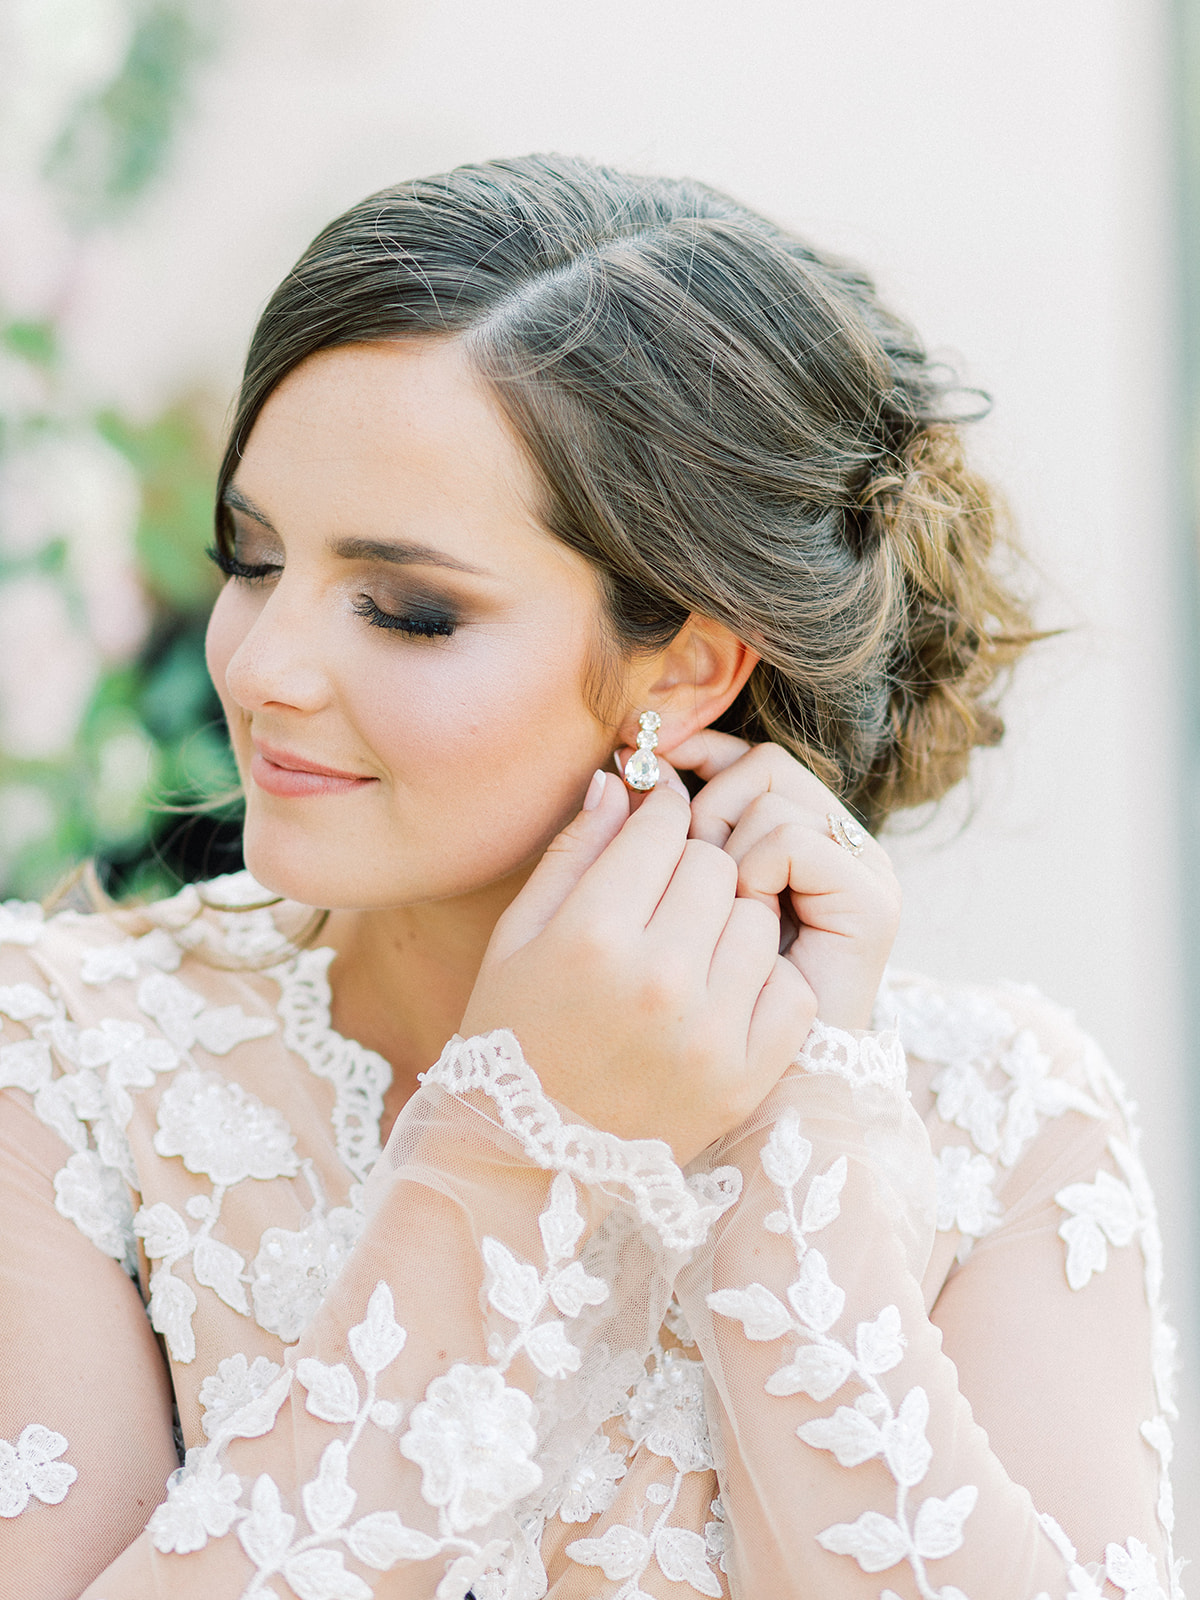 Wedding hair and makeup: Whimsical garden elegance styled shoot featured on Alexa Kay Events